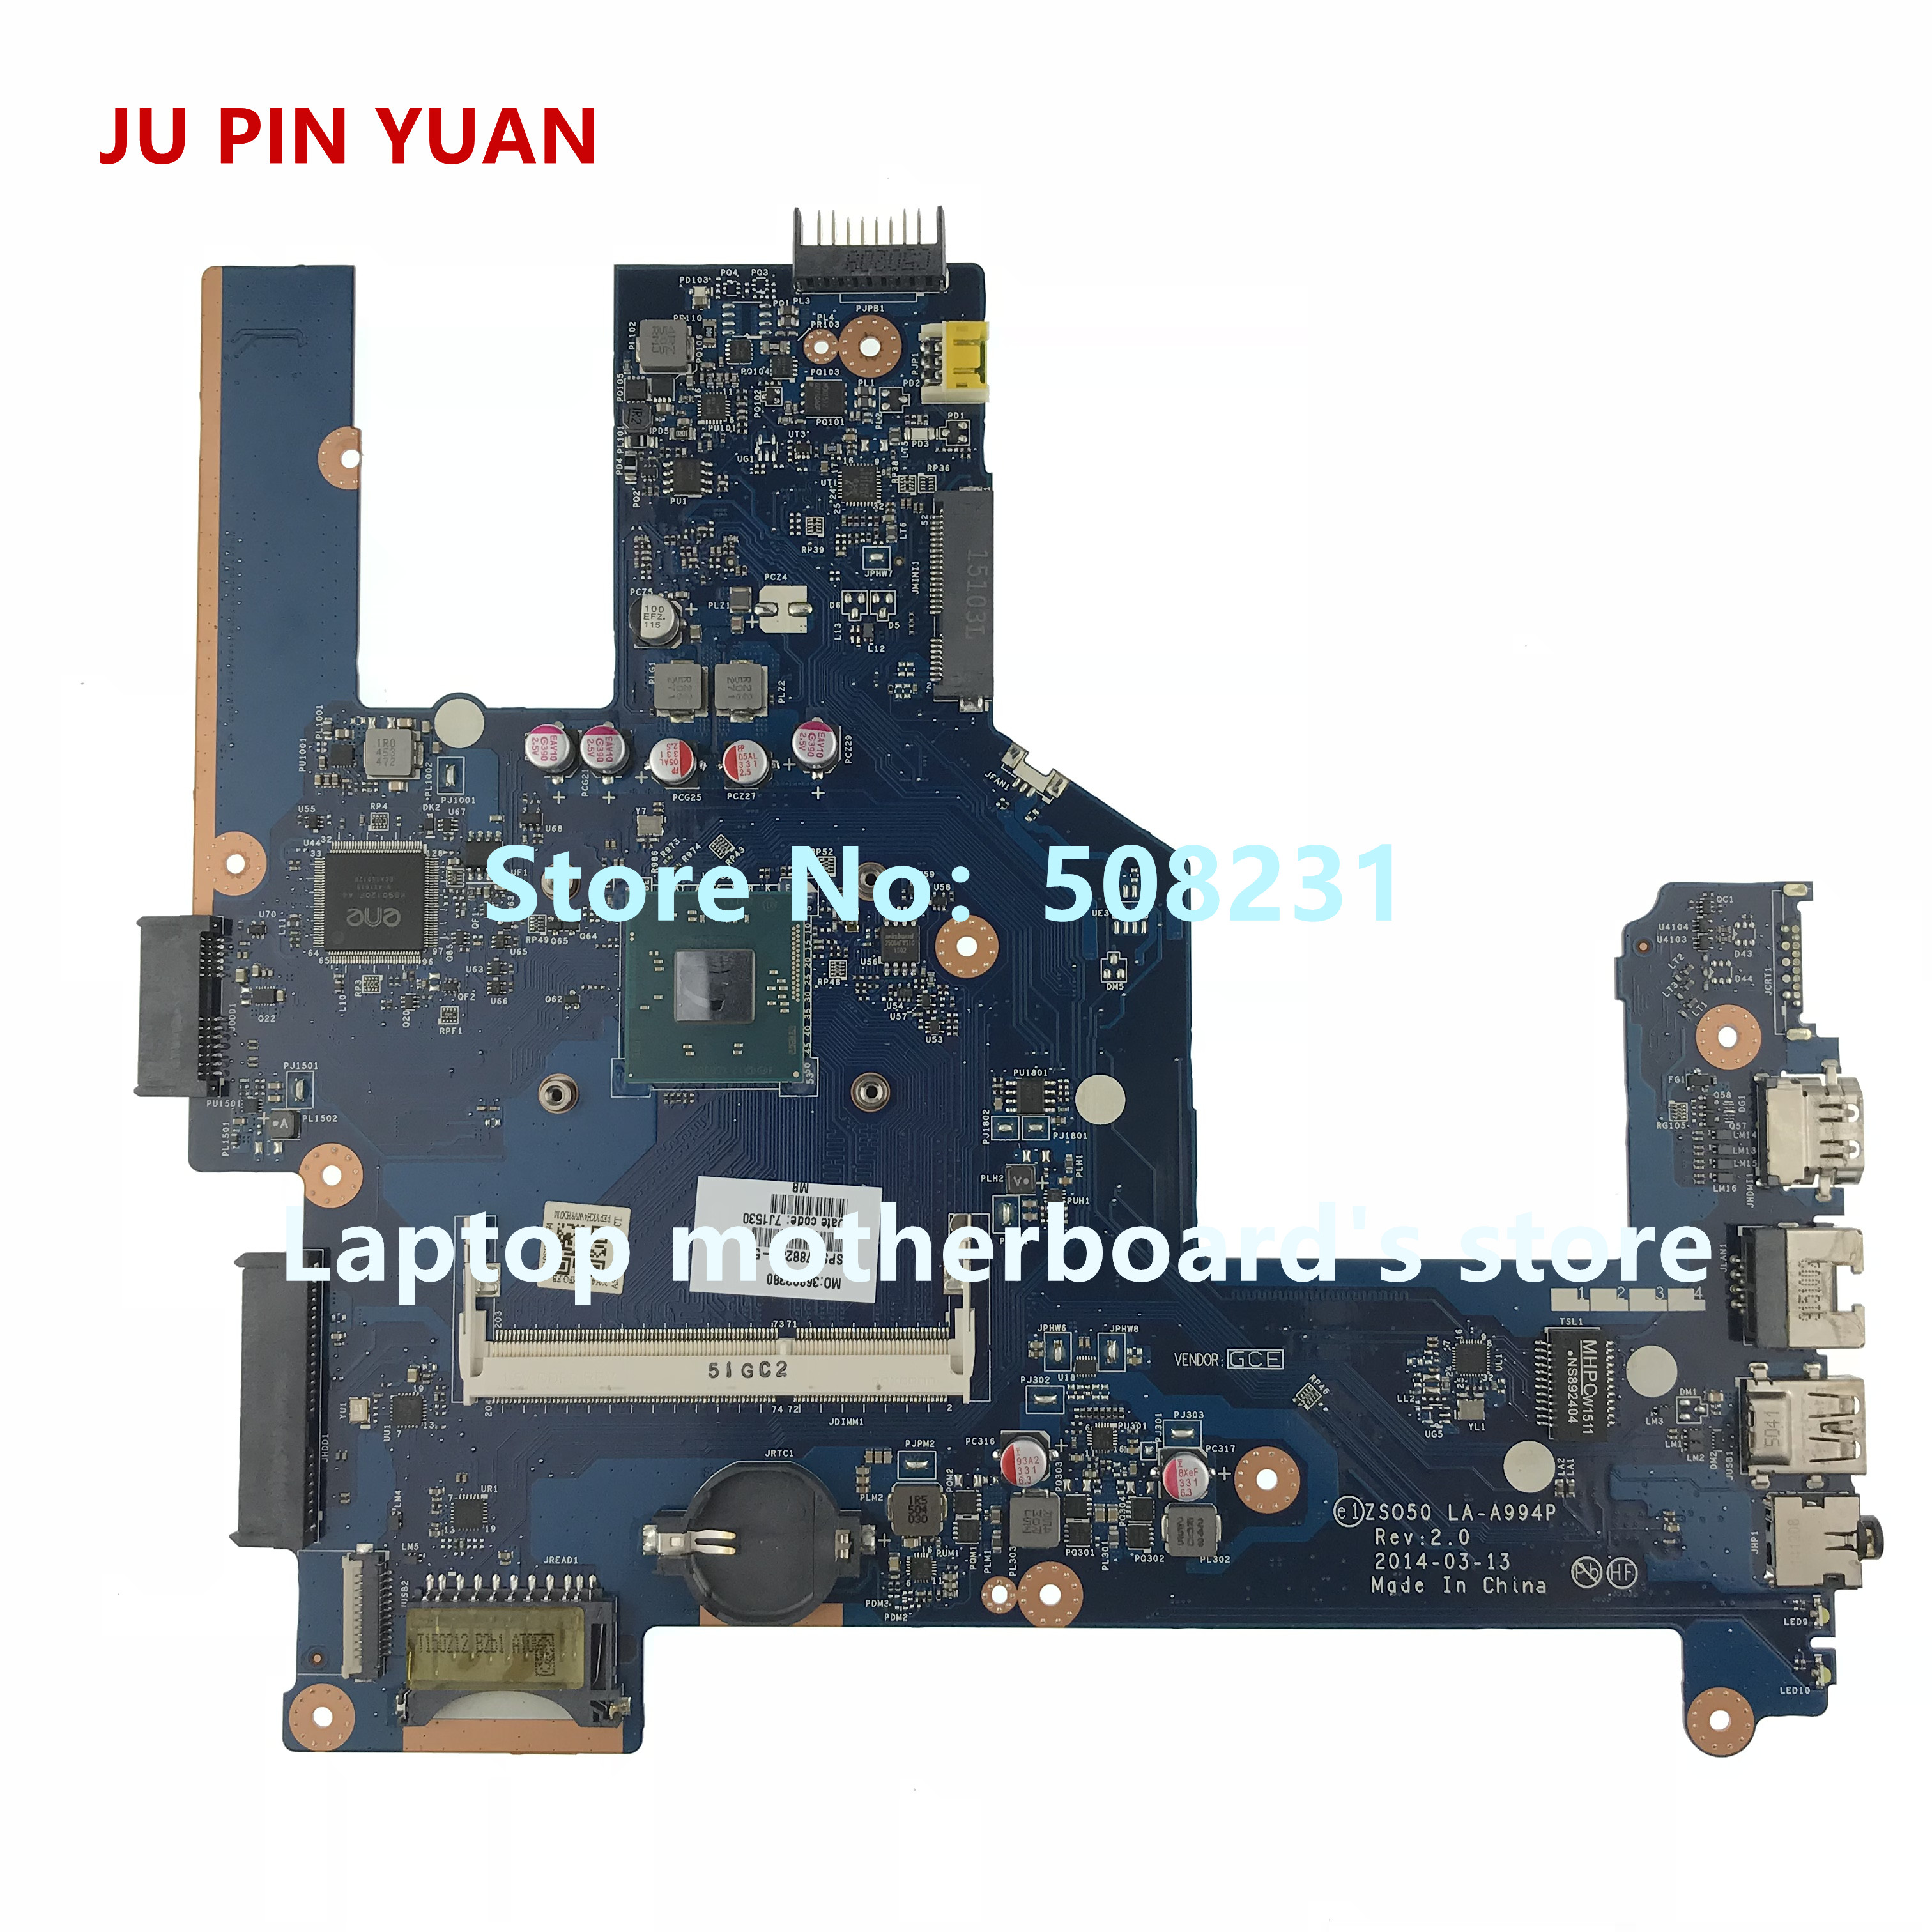 JU PIN YUAN 788289-501 788289-001 ZSO50 LA-A994P Laptop Motherboard  For HP 250 G3 15-R 15T-R NOTEBOOK PC fully Tested caterham 7 csr